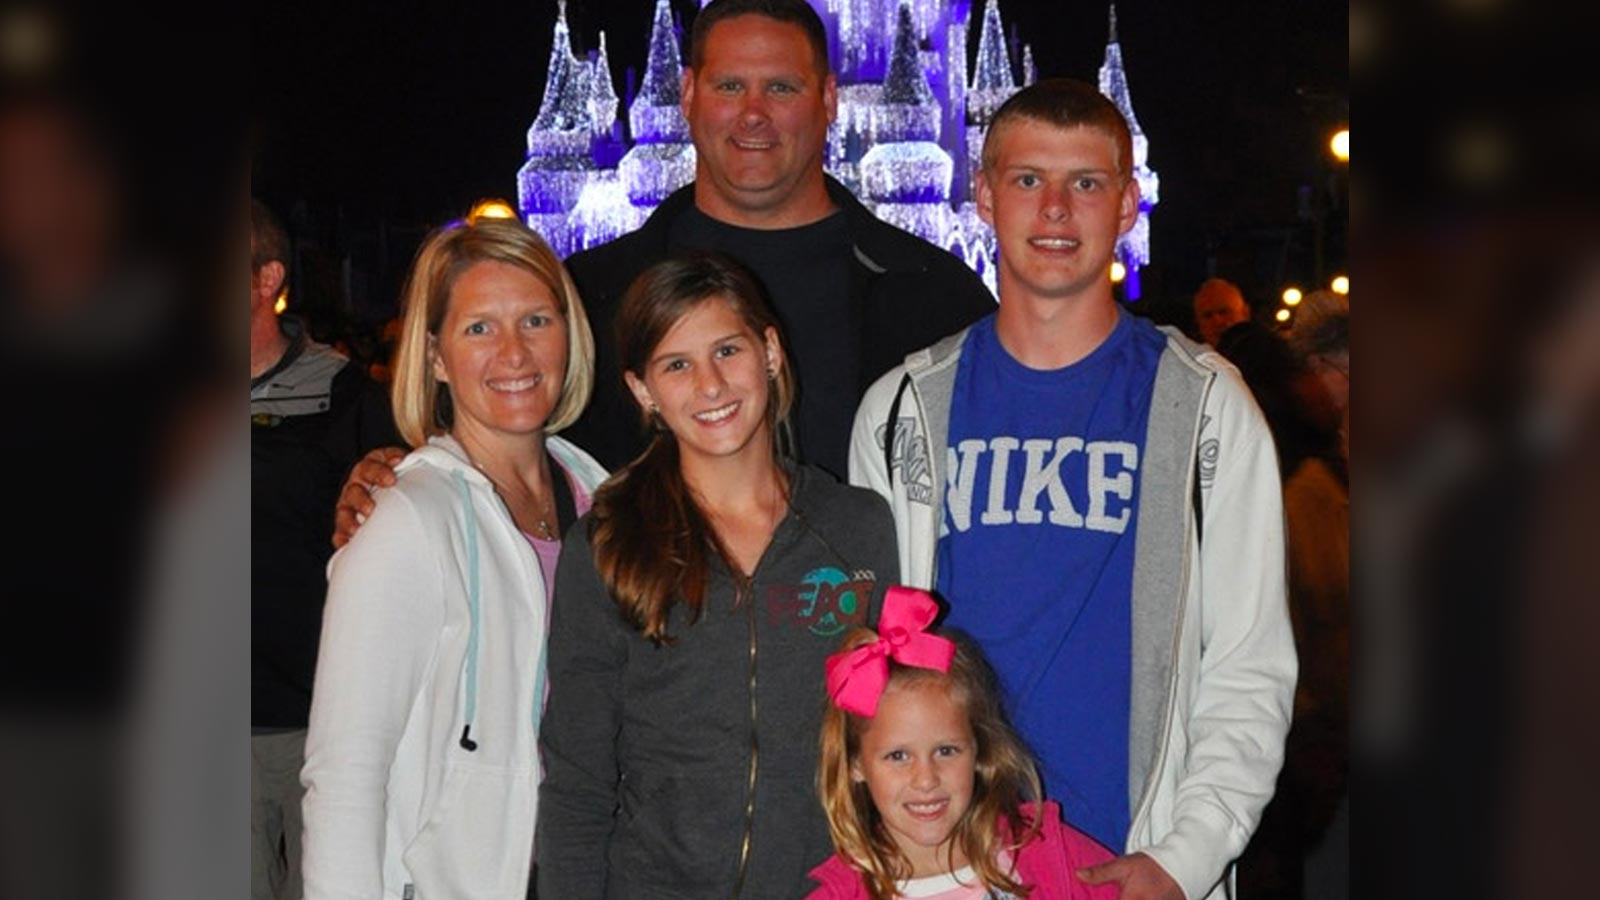 Stephanie with her family at Disney World